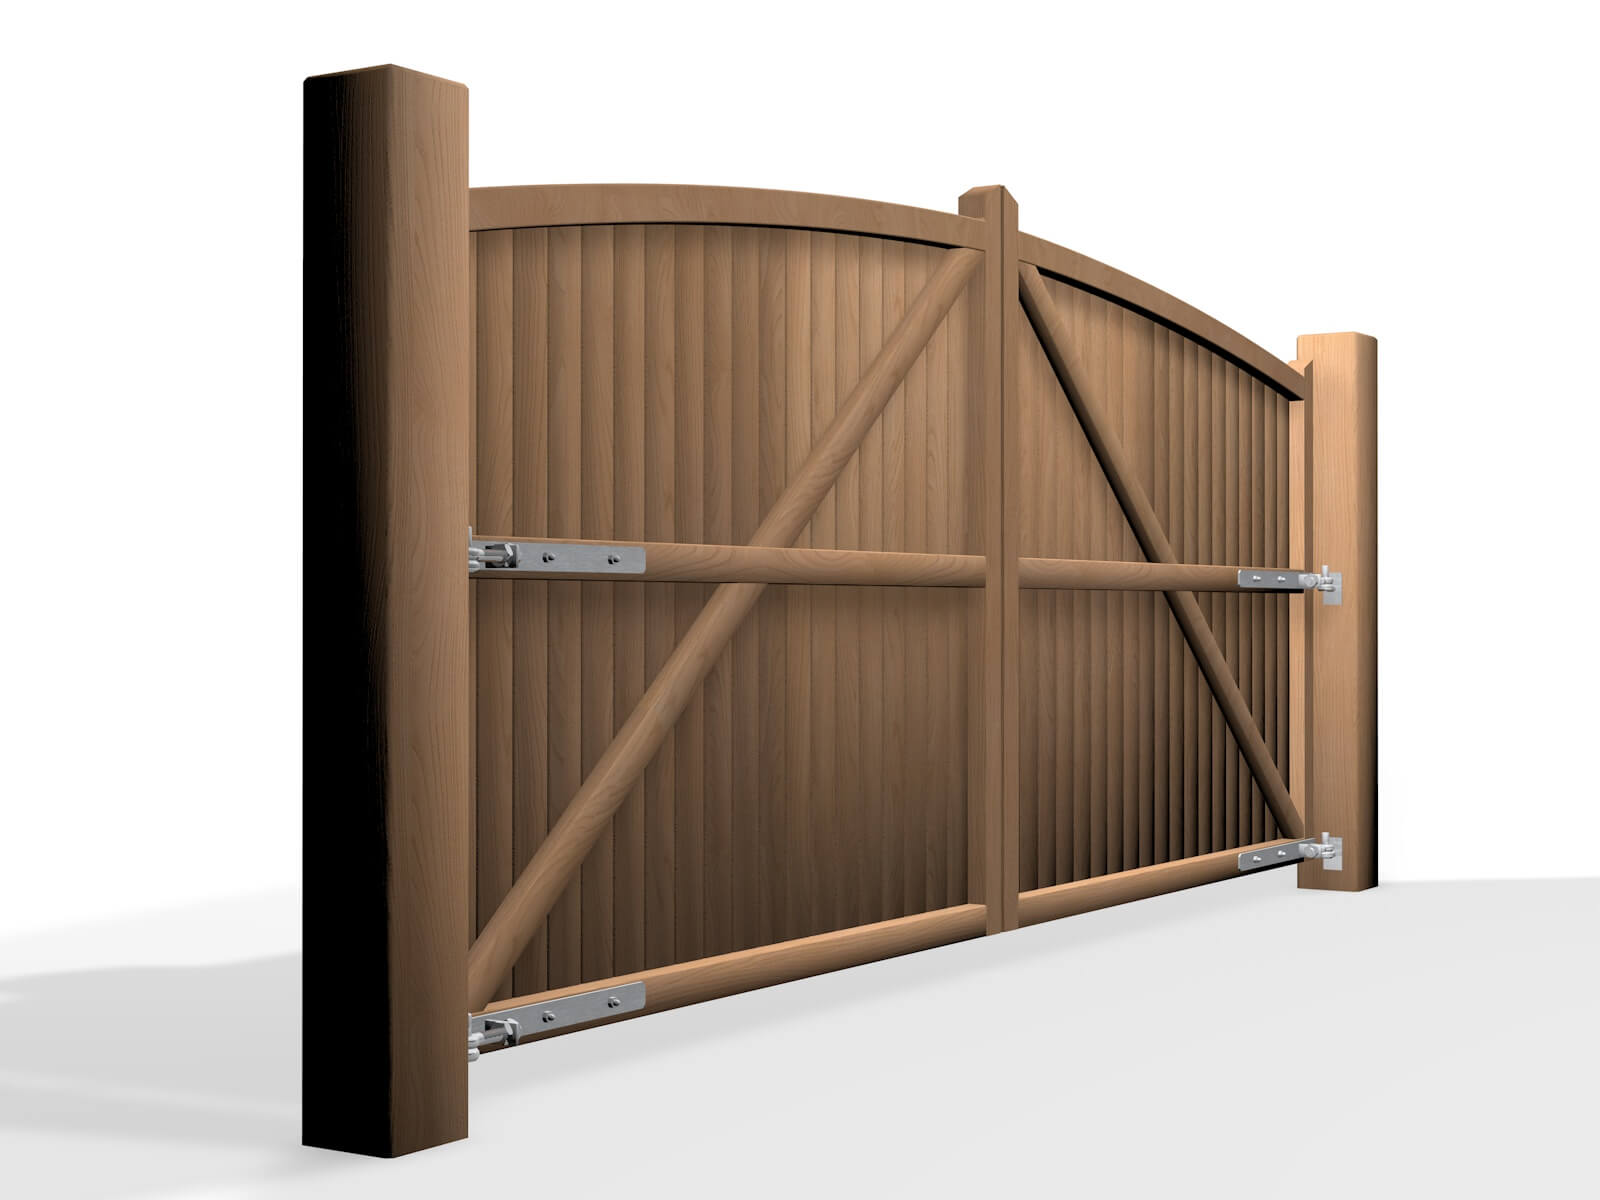 Bristol installers of arch top wooden swinging gate